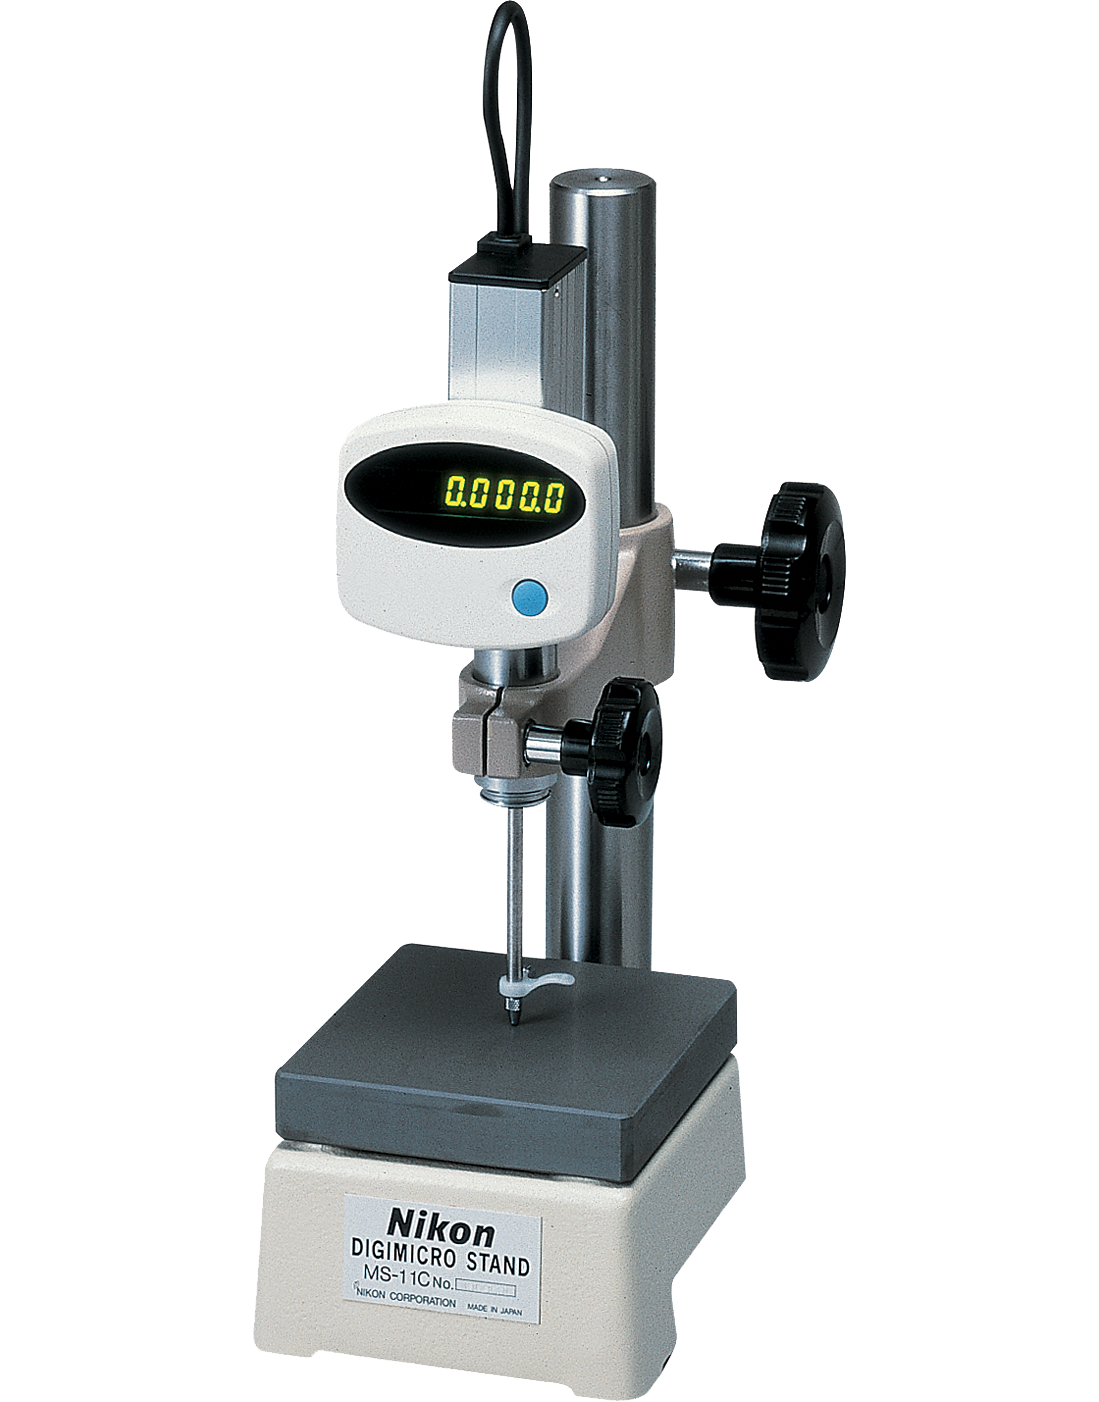 Nikon Digimicro MF 501 Digital Height Gauge